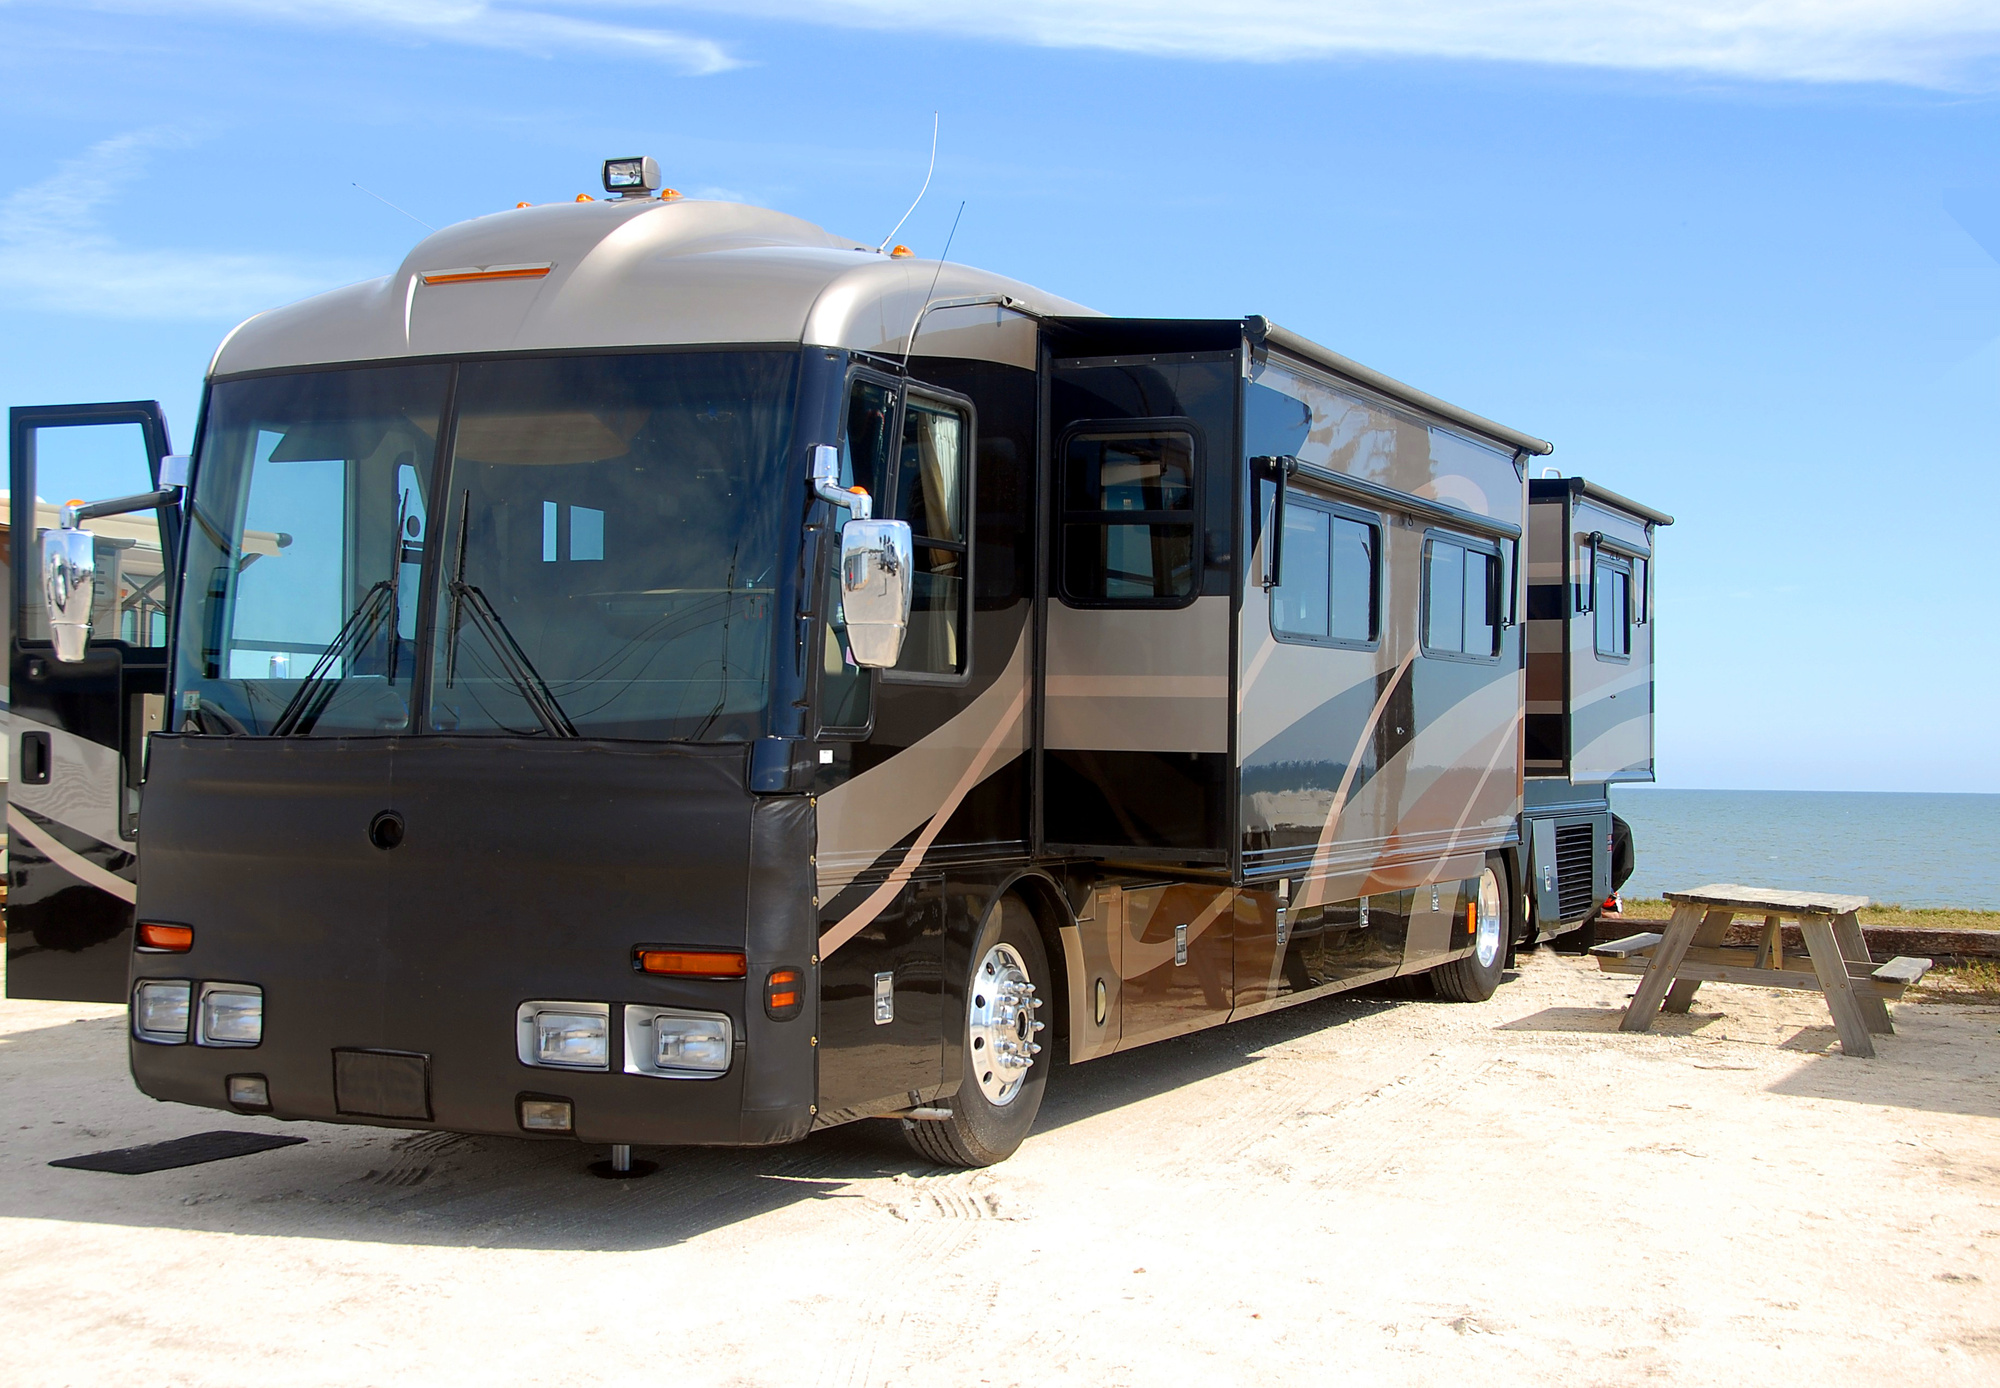 10 Must-Have RV Accessories To Get This Camping Season